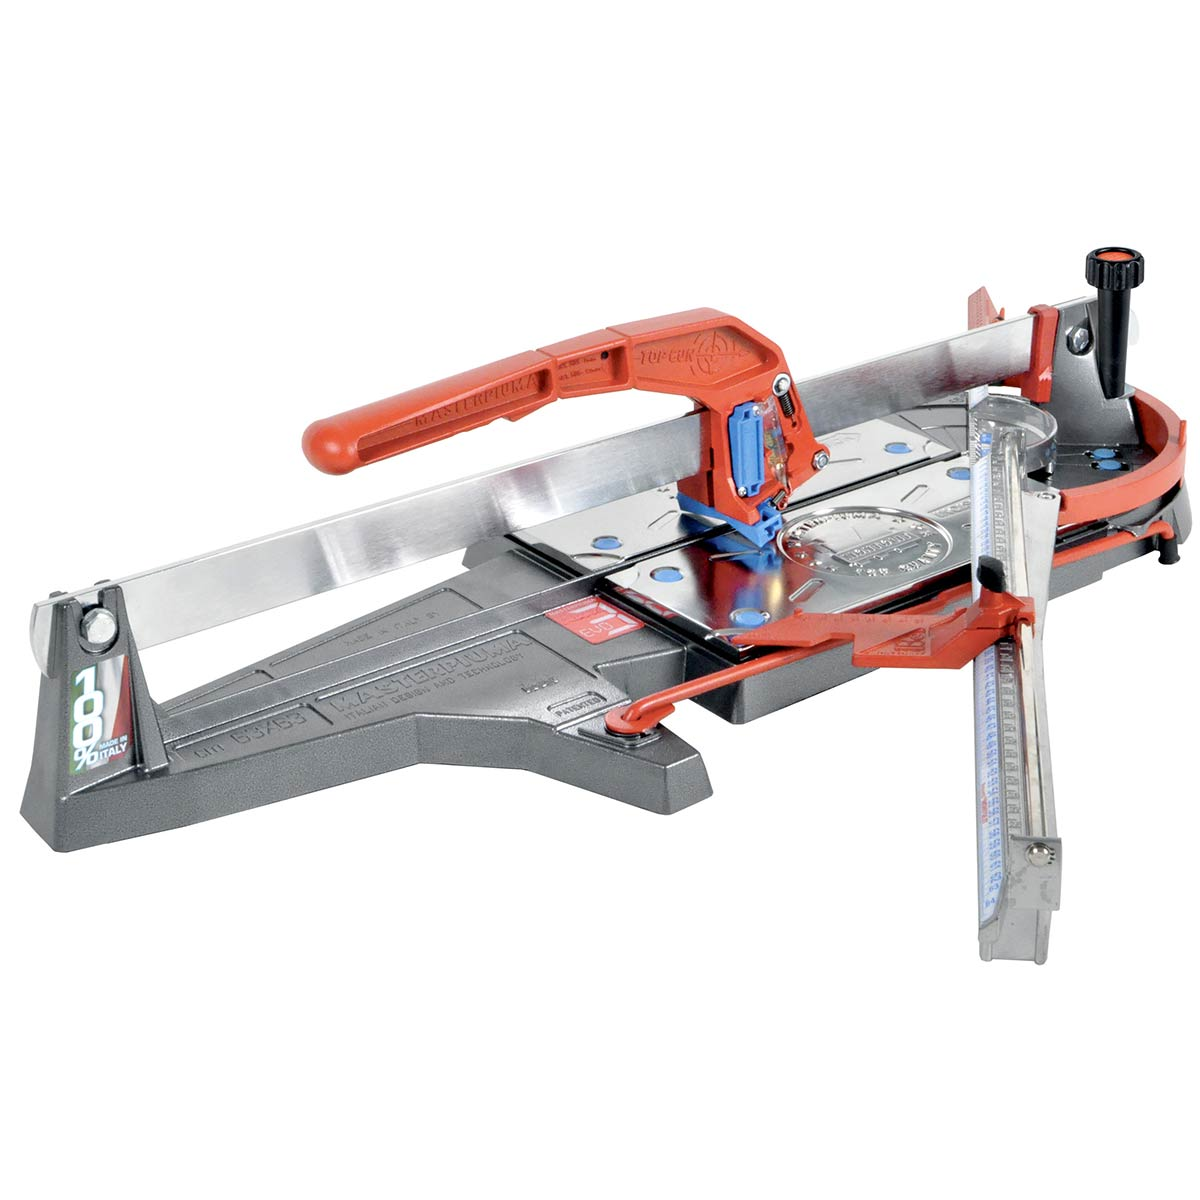 Ceramic Tile Cutter Ceramic Tile Cutter 8100bg Tile Cutting Tools For Ceramic And Po